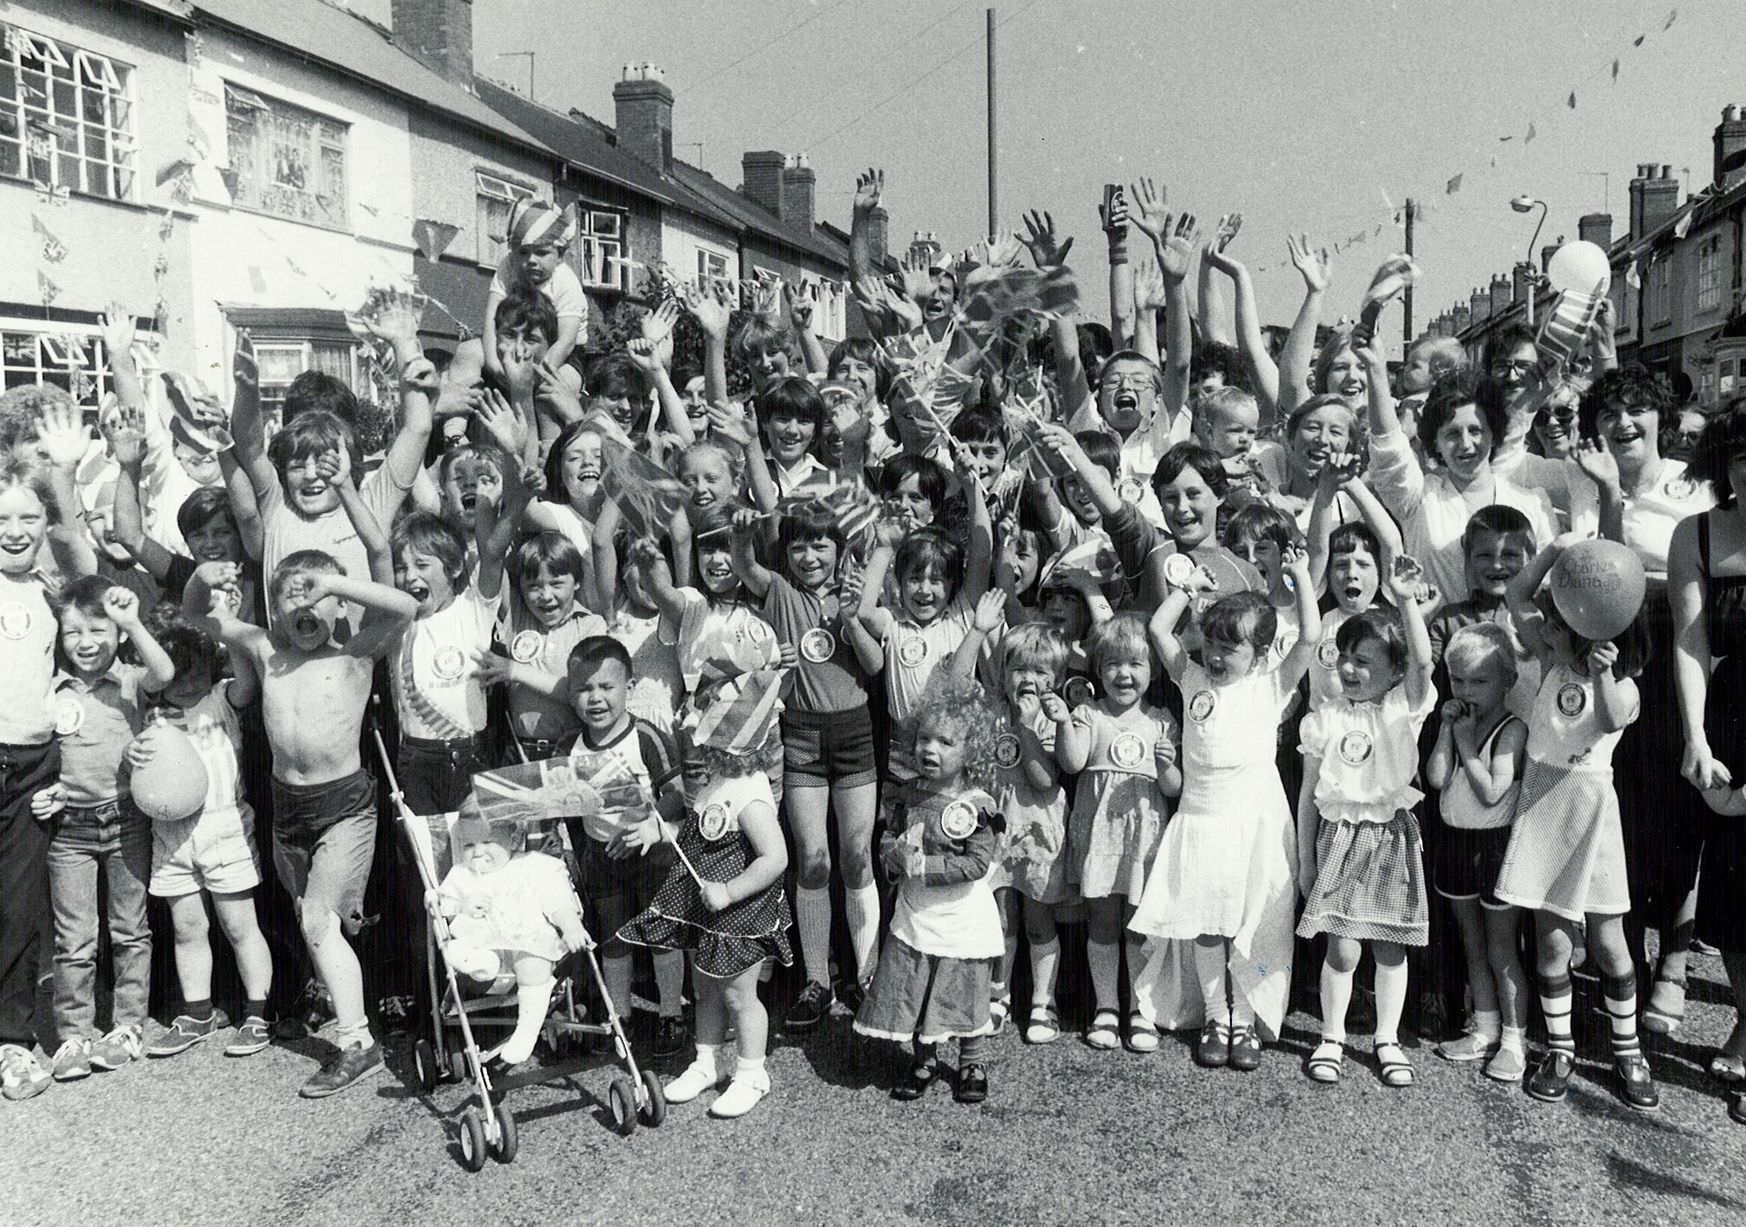 Street party for the Royal Wedding of Prince Charles and Lady Diana Spencer at Blythswood Road in Tyseley who set up a rousing cheer as their party got underway. 29th July 1981.